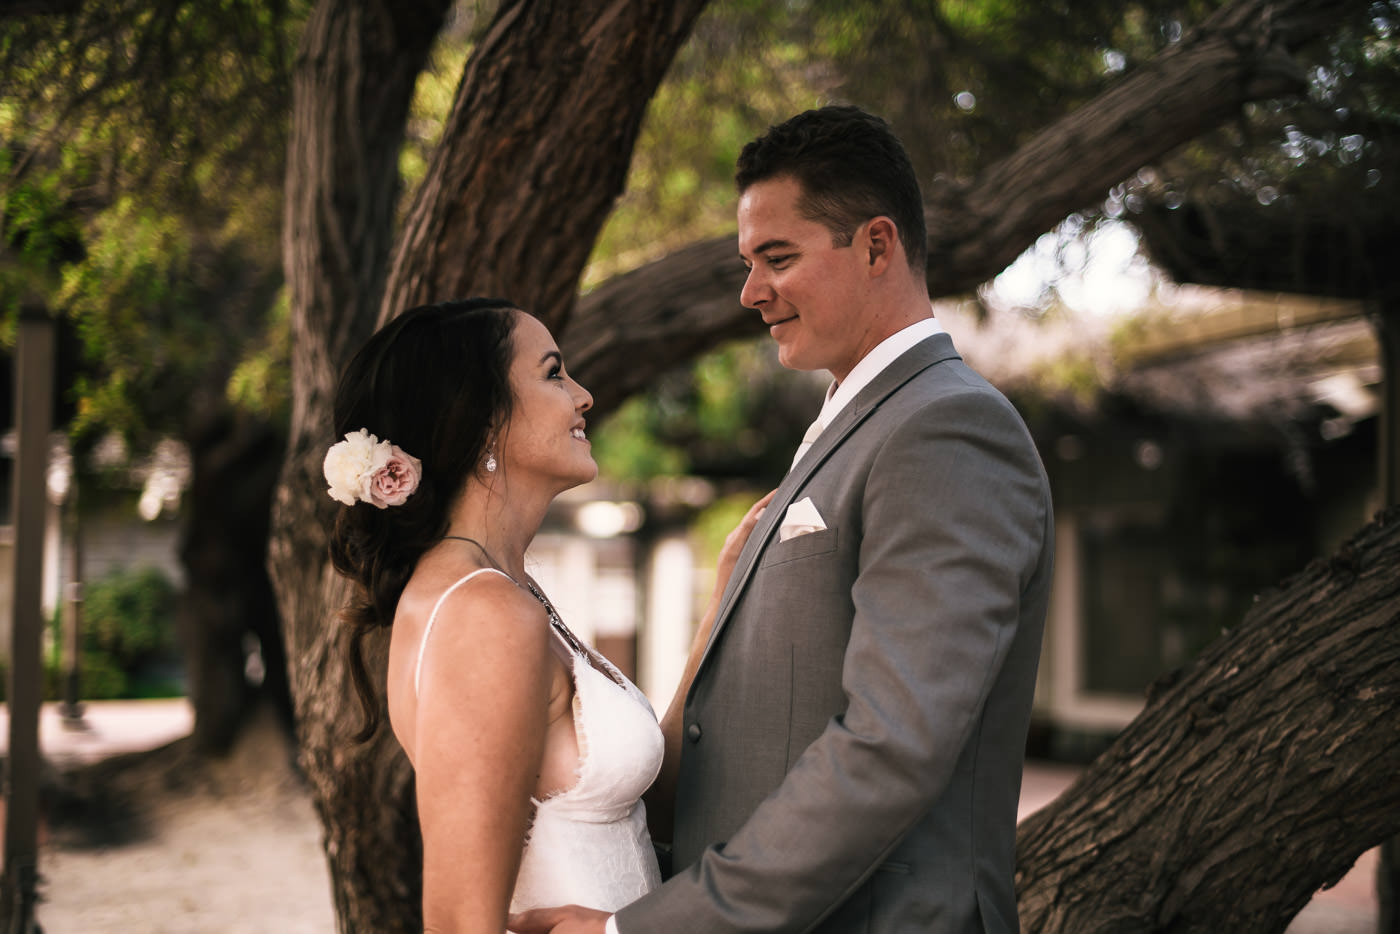 Bride and groom hold each other close as they stand in front of a twisting tree at Marina VIllage.